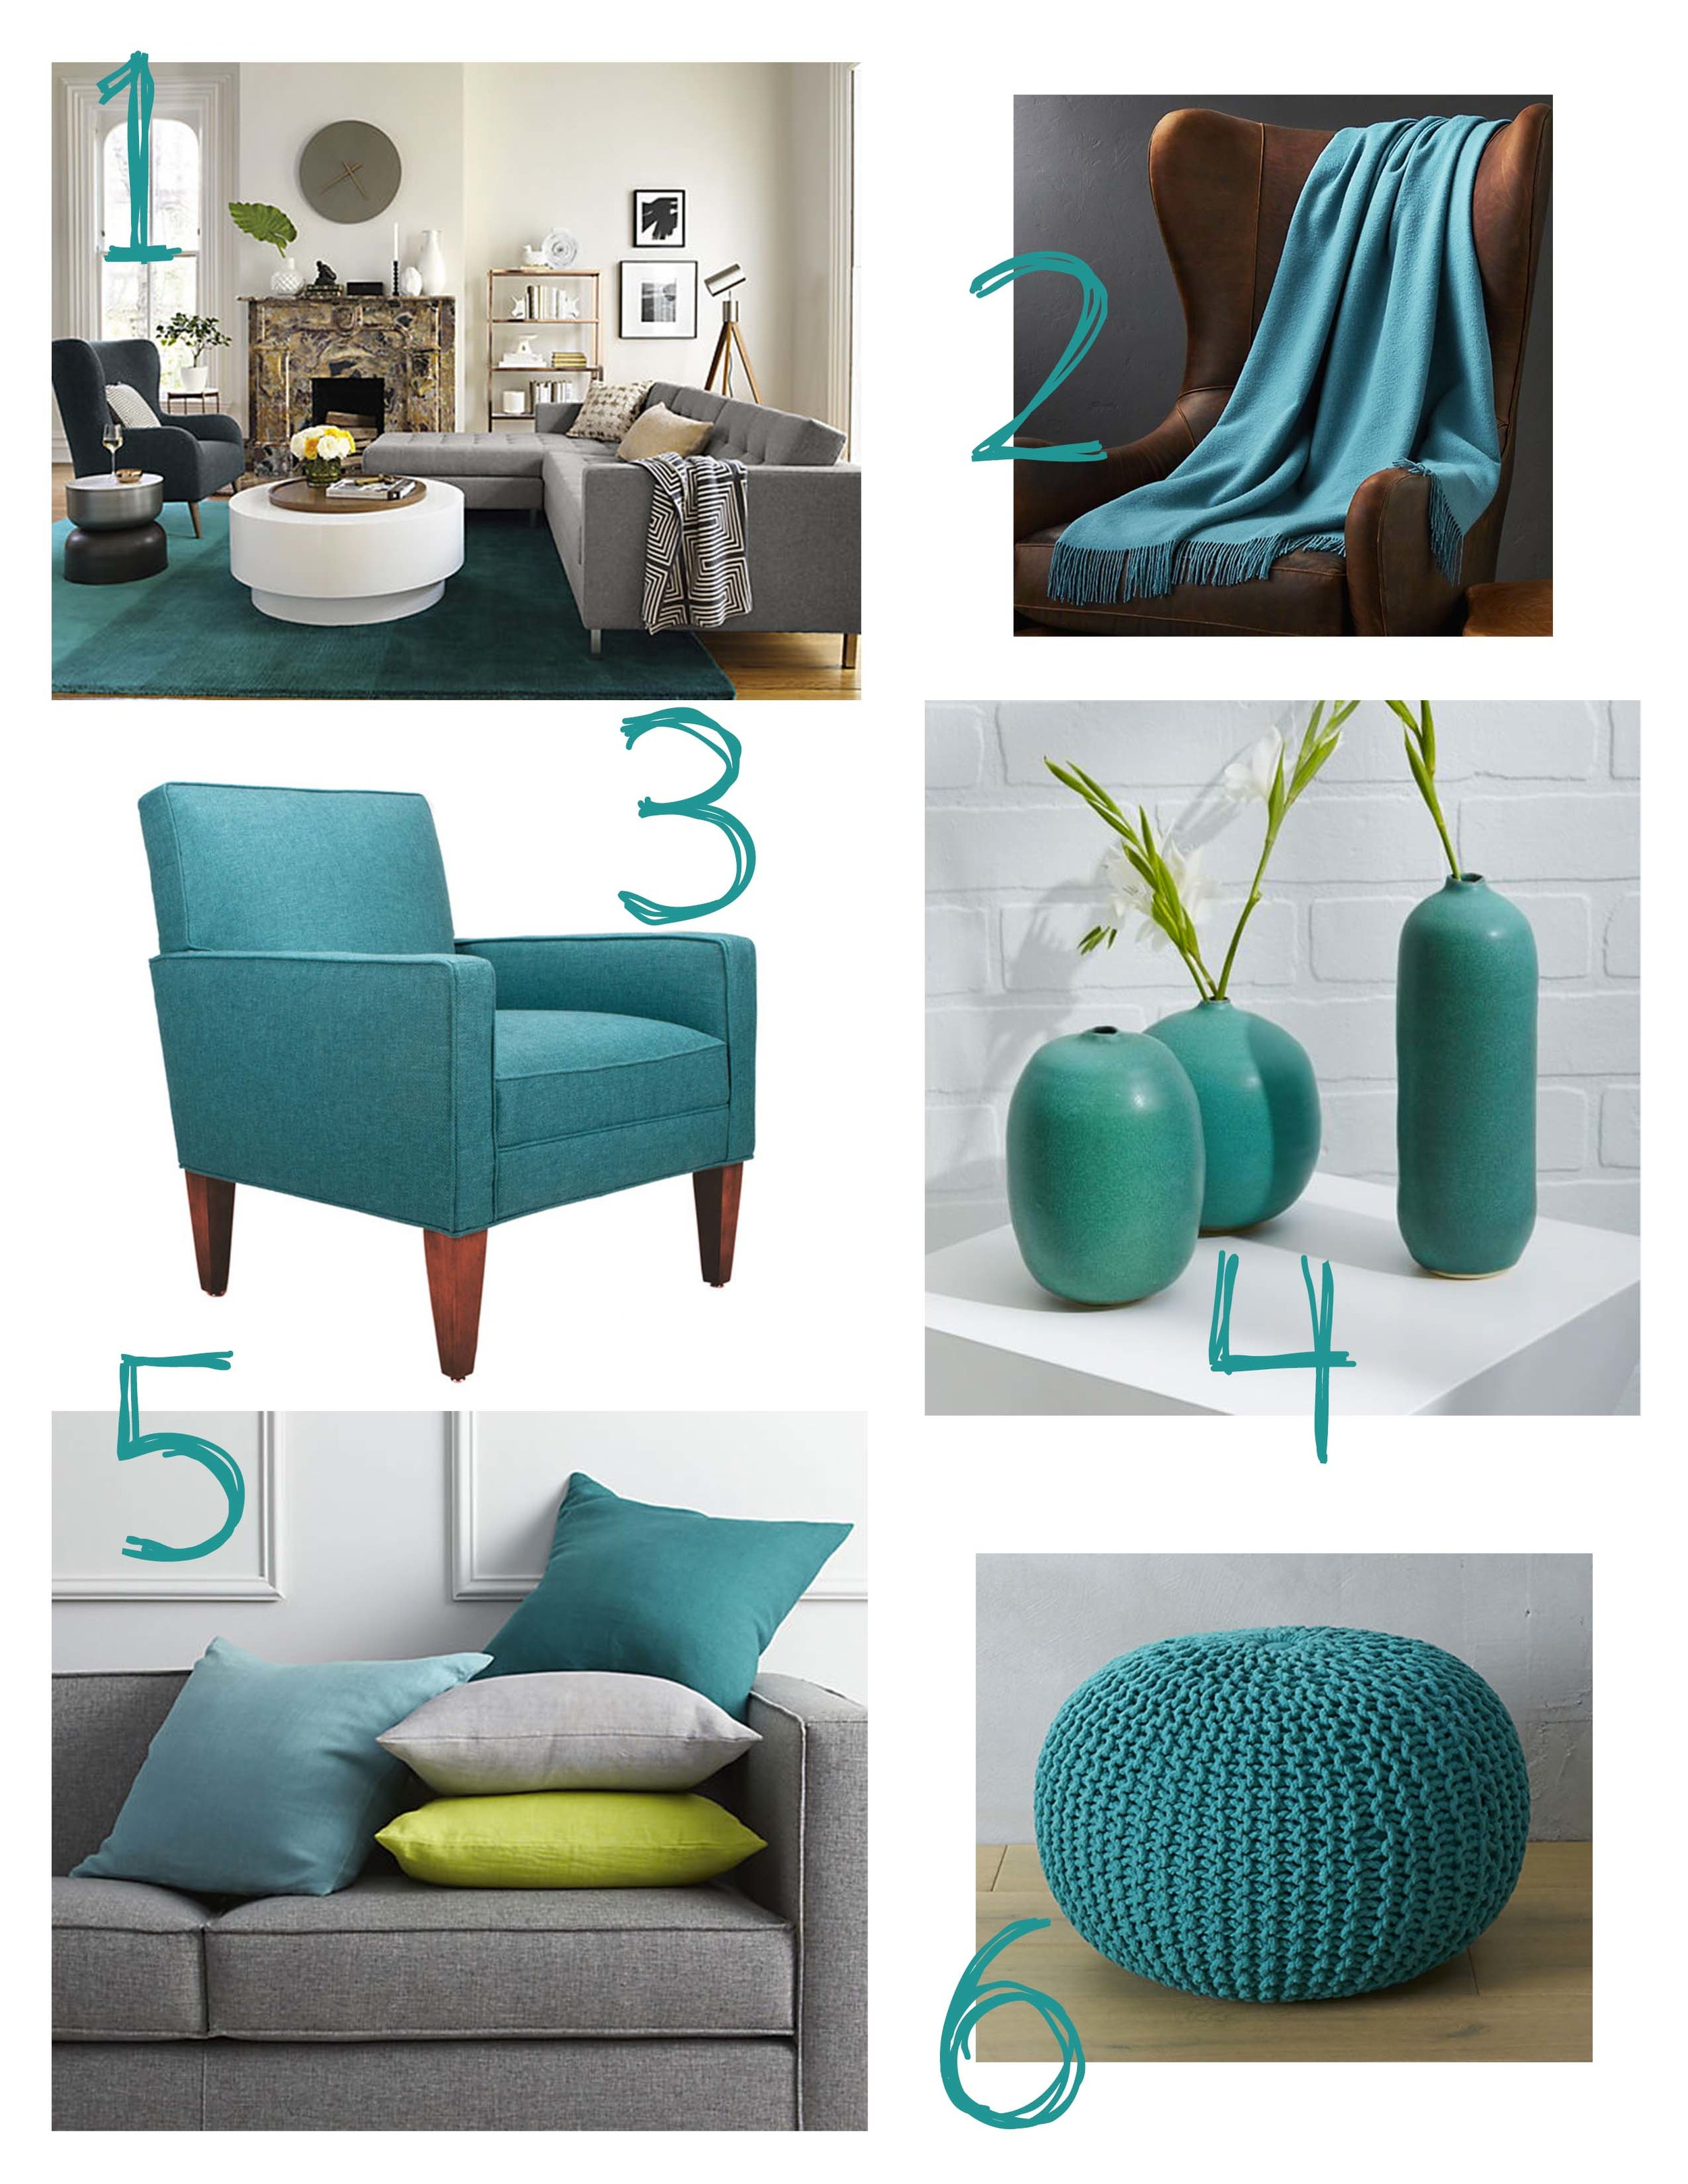 """1. CB2 Ombre Teal Rug:http://www.cb2.com/ombre-teal-rug-8x10/s569522 2. Crate & Barrel Lima Alpaca Peacock Blue Throw:http://www.crateandbarrel.com/lima-alpaca-peacock-blue-throw/s279406 3. Dot&Bo Uptown Lounge Chair in Teal:http://www.dotandbo.com/collections/free-shipping-day-seating/22941-uptown-lounge-chair-in-teal#Chestnut 4. West Elm Judy Jackson Vase Set:http://www.westelm.com/products/judy-jackson-vase-set-d3619/?pkey=cvases-botanicals%7C%7C&group=1&sku=1456768 5. CB2 Linon Teal 20"""" Pillow:http://www.cb2.com/linon-teal-20-pillow-with-down-alternative-insert/s206885 6. CB2 Knitted Teal Pouf:http://www.cb2.com/knitted-teal-pouf/s563043"""